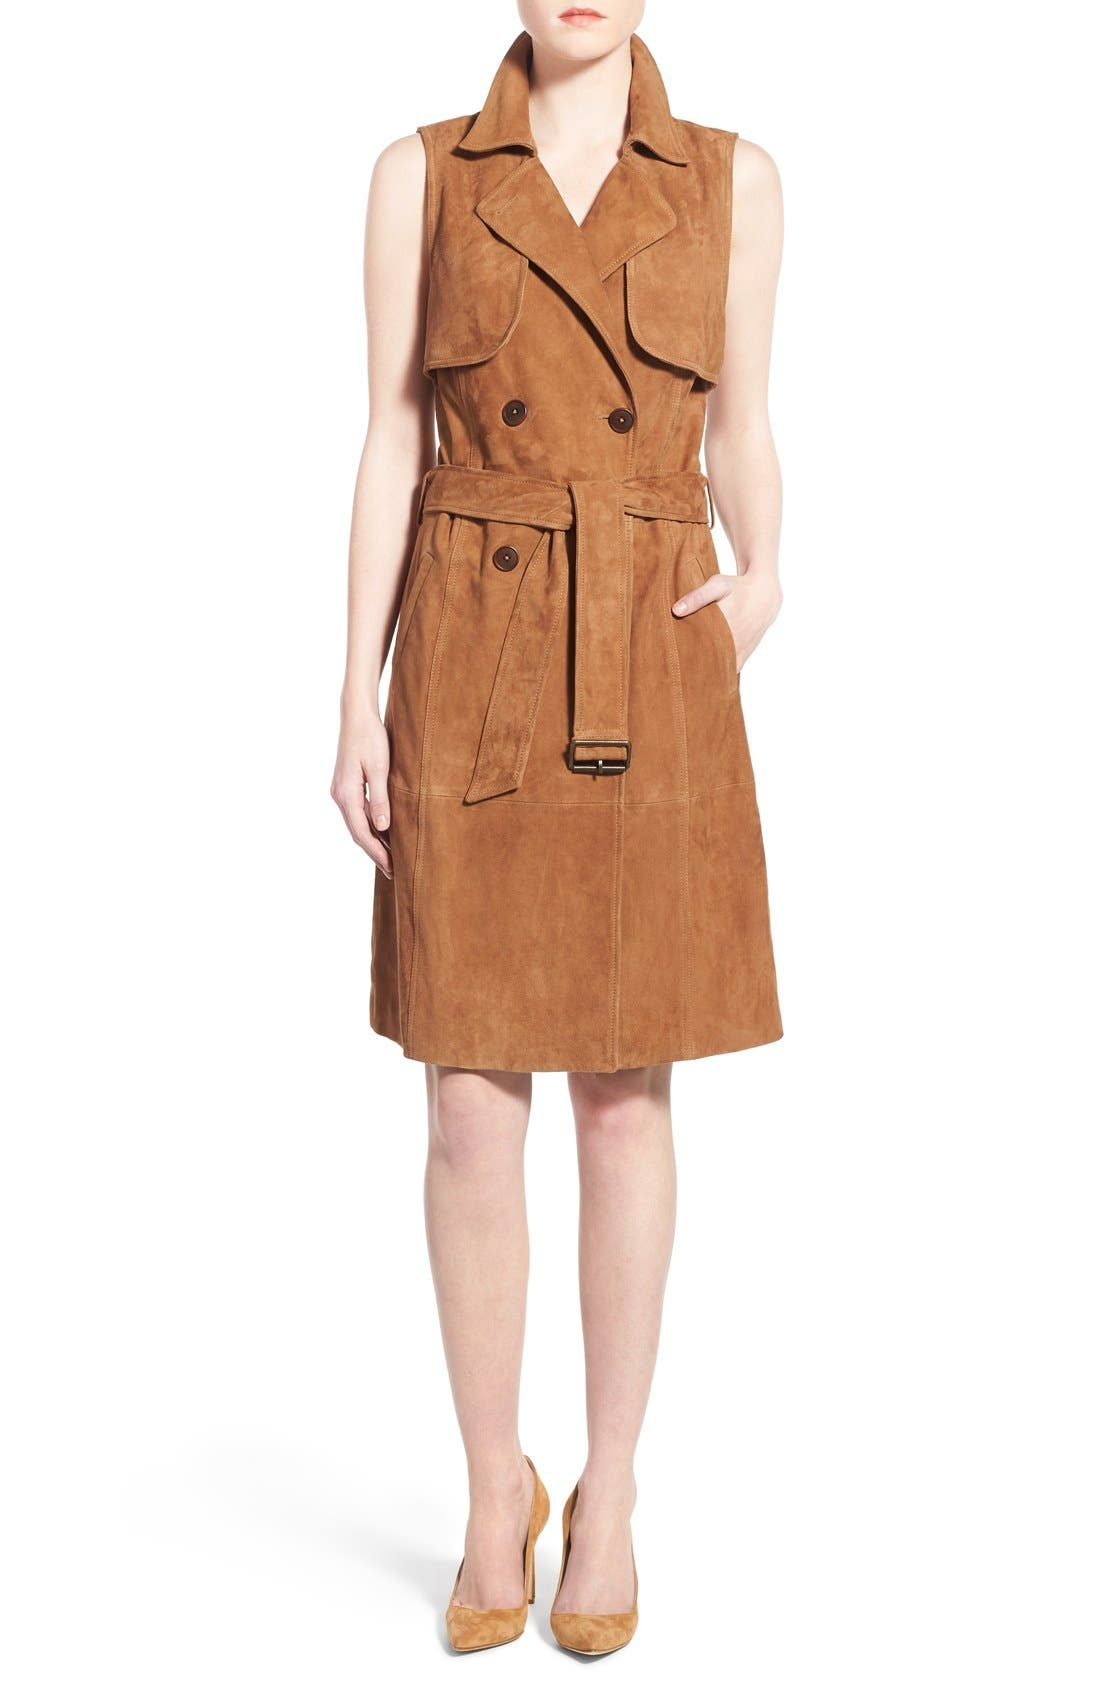 Alternate Image 1 Selected - Olivia Palermo + Chelsea28 Sleeveless Suede Trench Dress